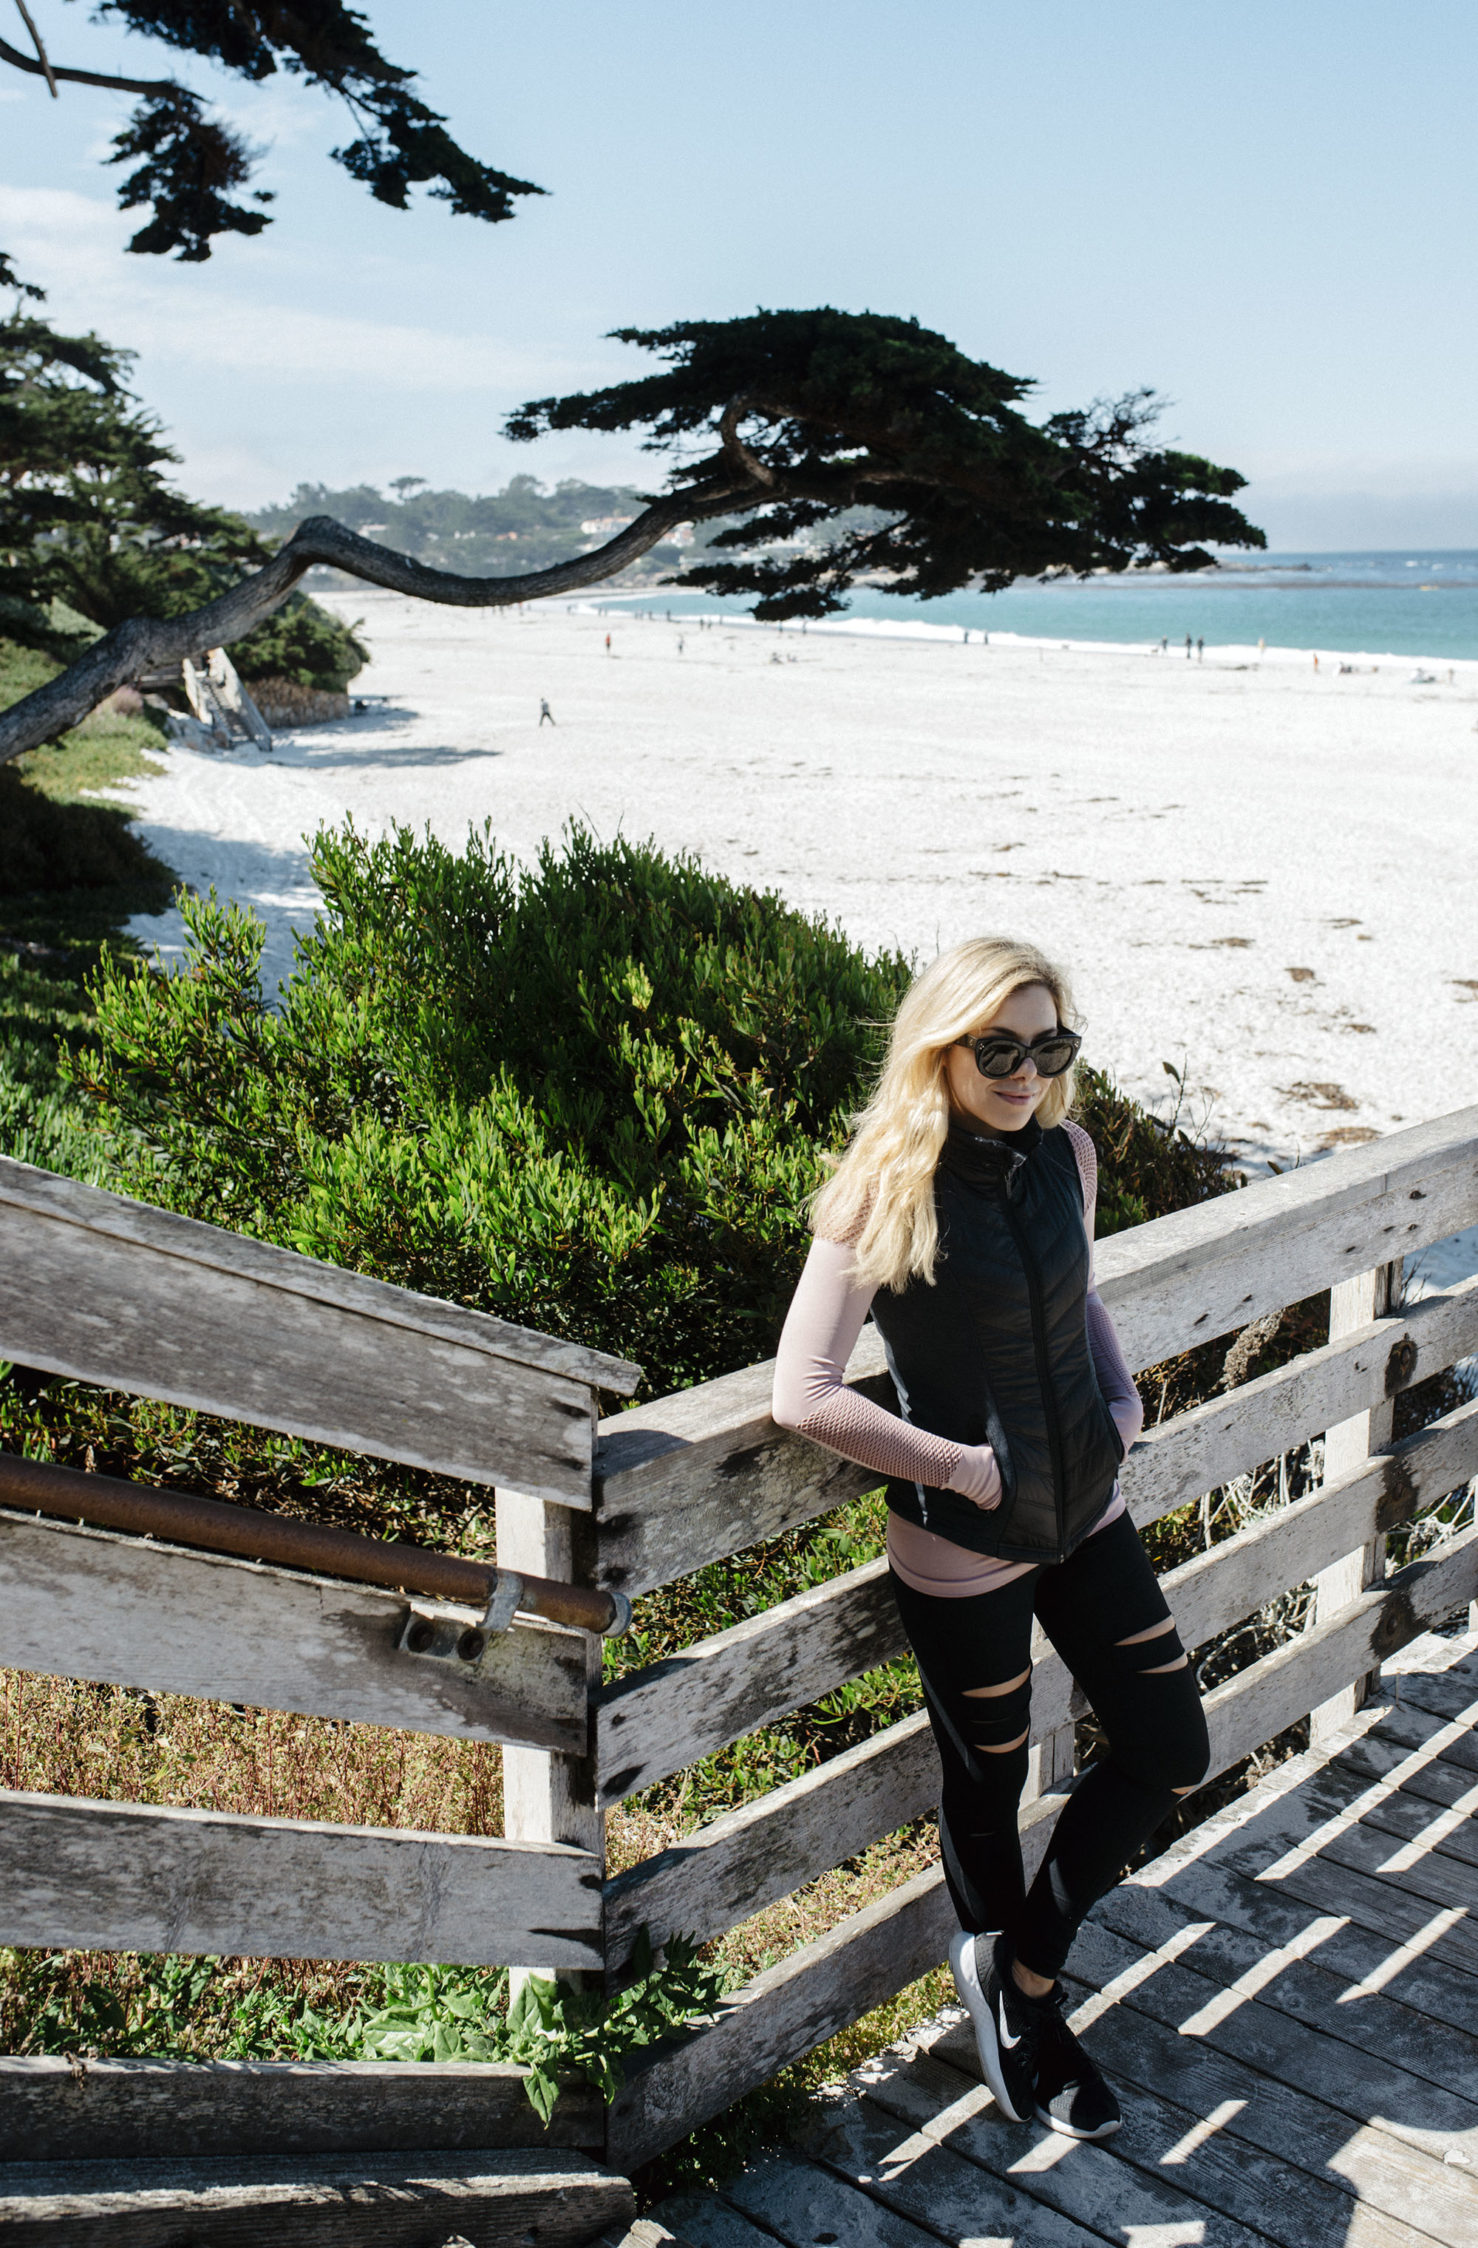 Carmel-by-the-Sea travel guide